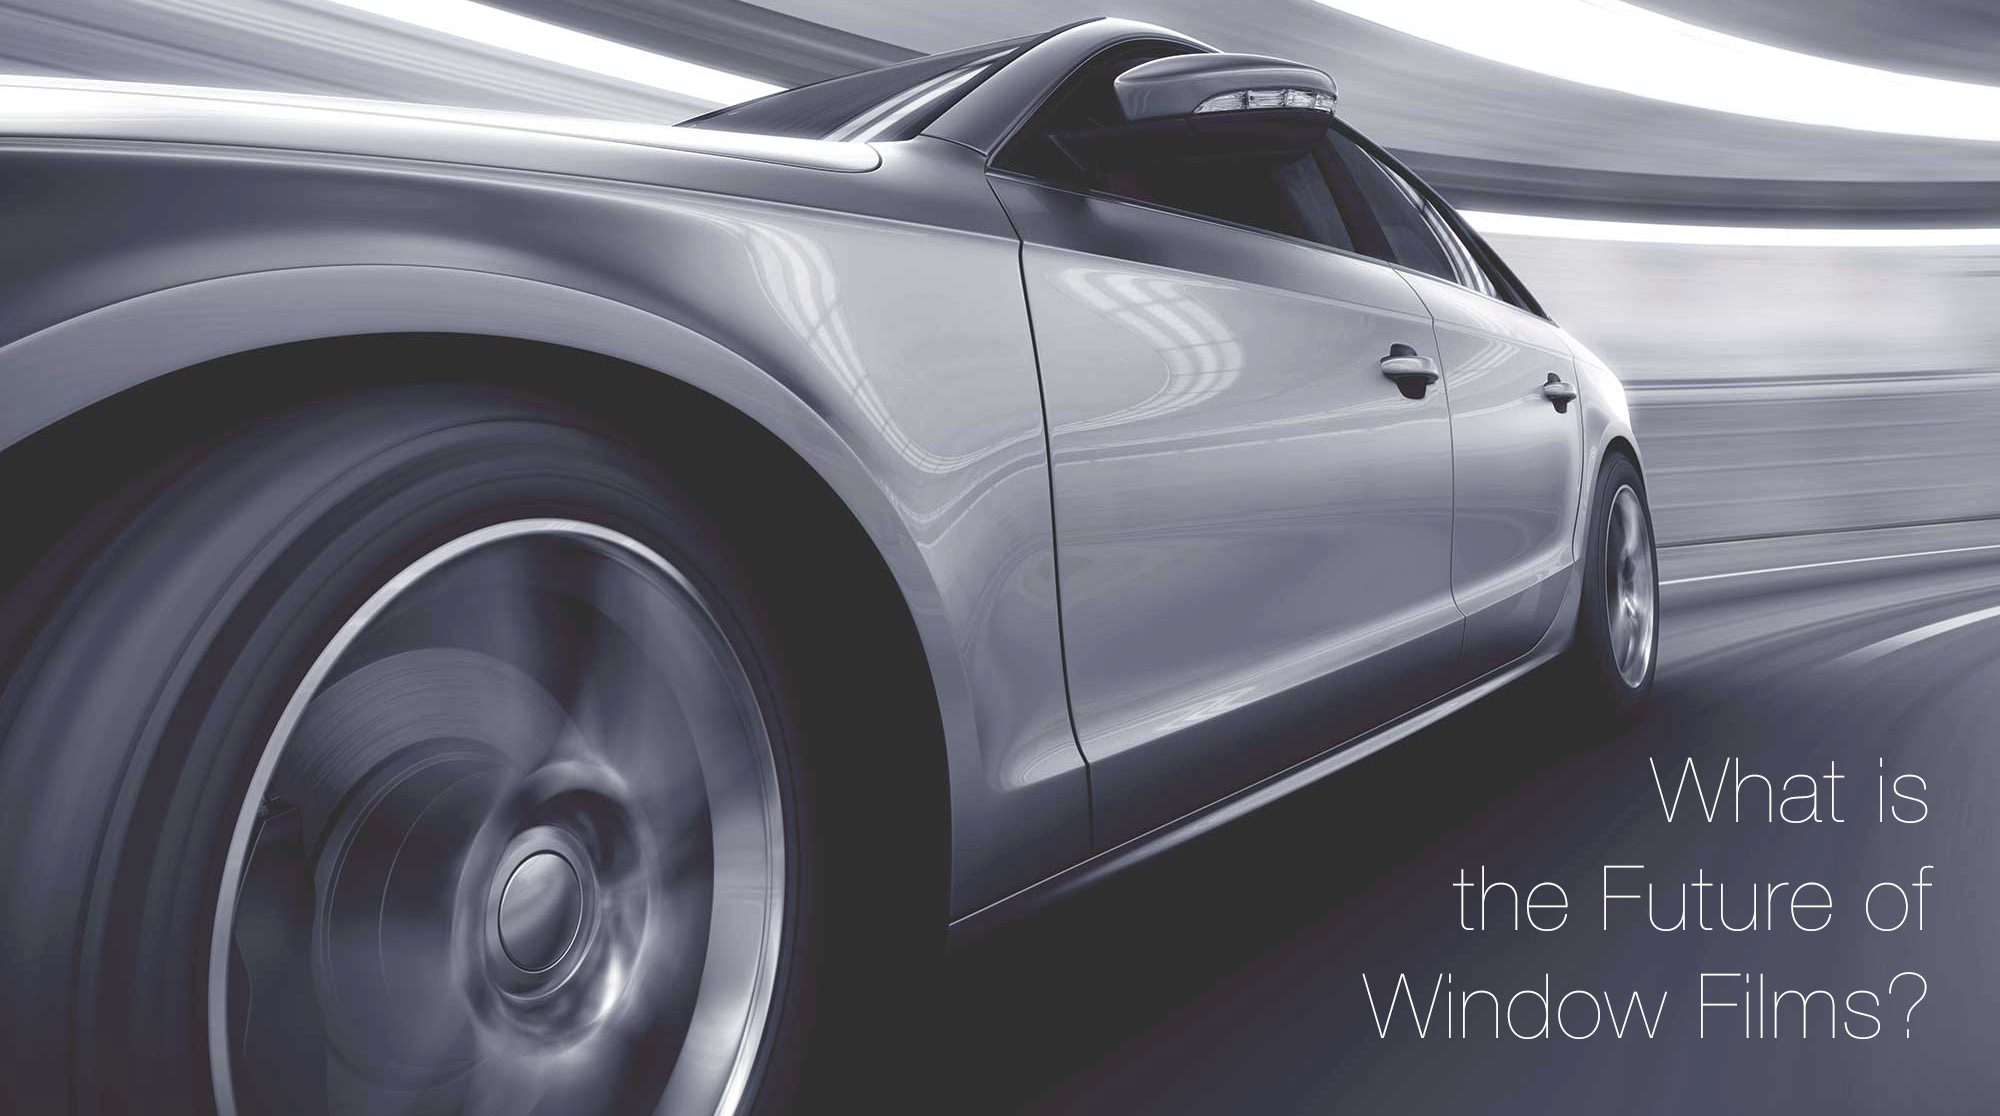 What Is The Future Of Window Films?